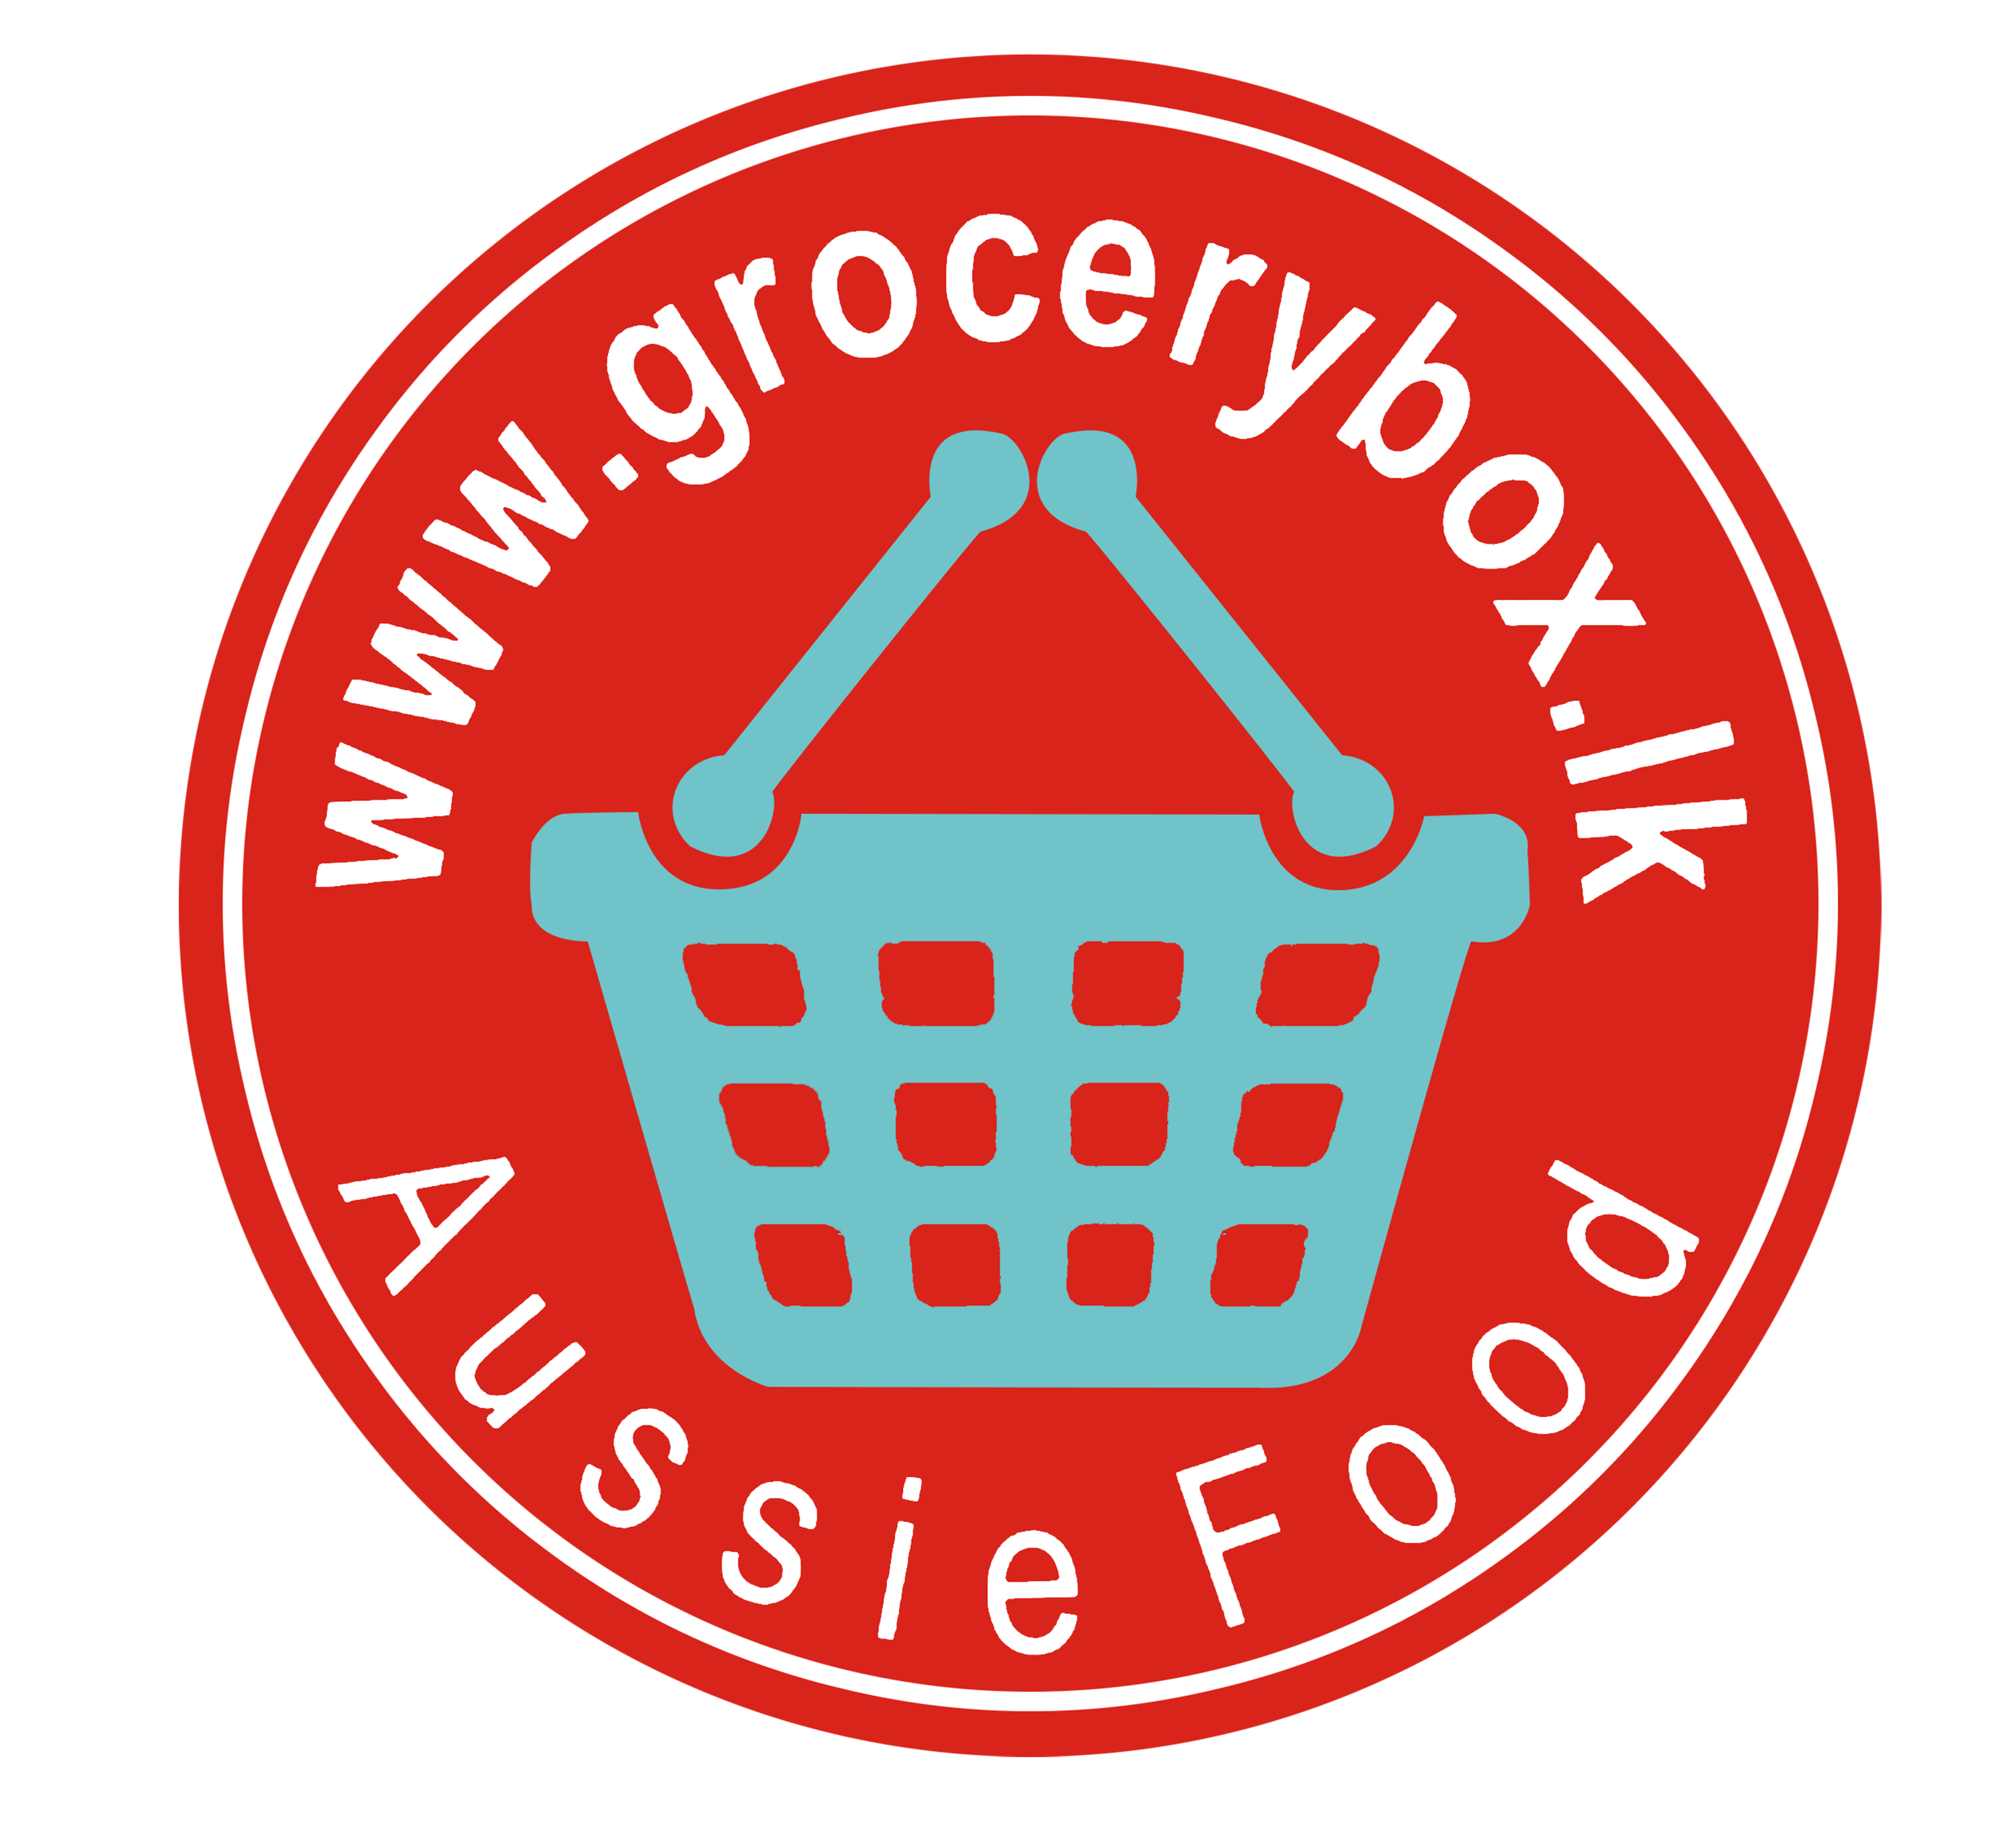 Grocerybox